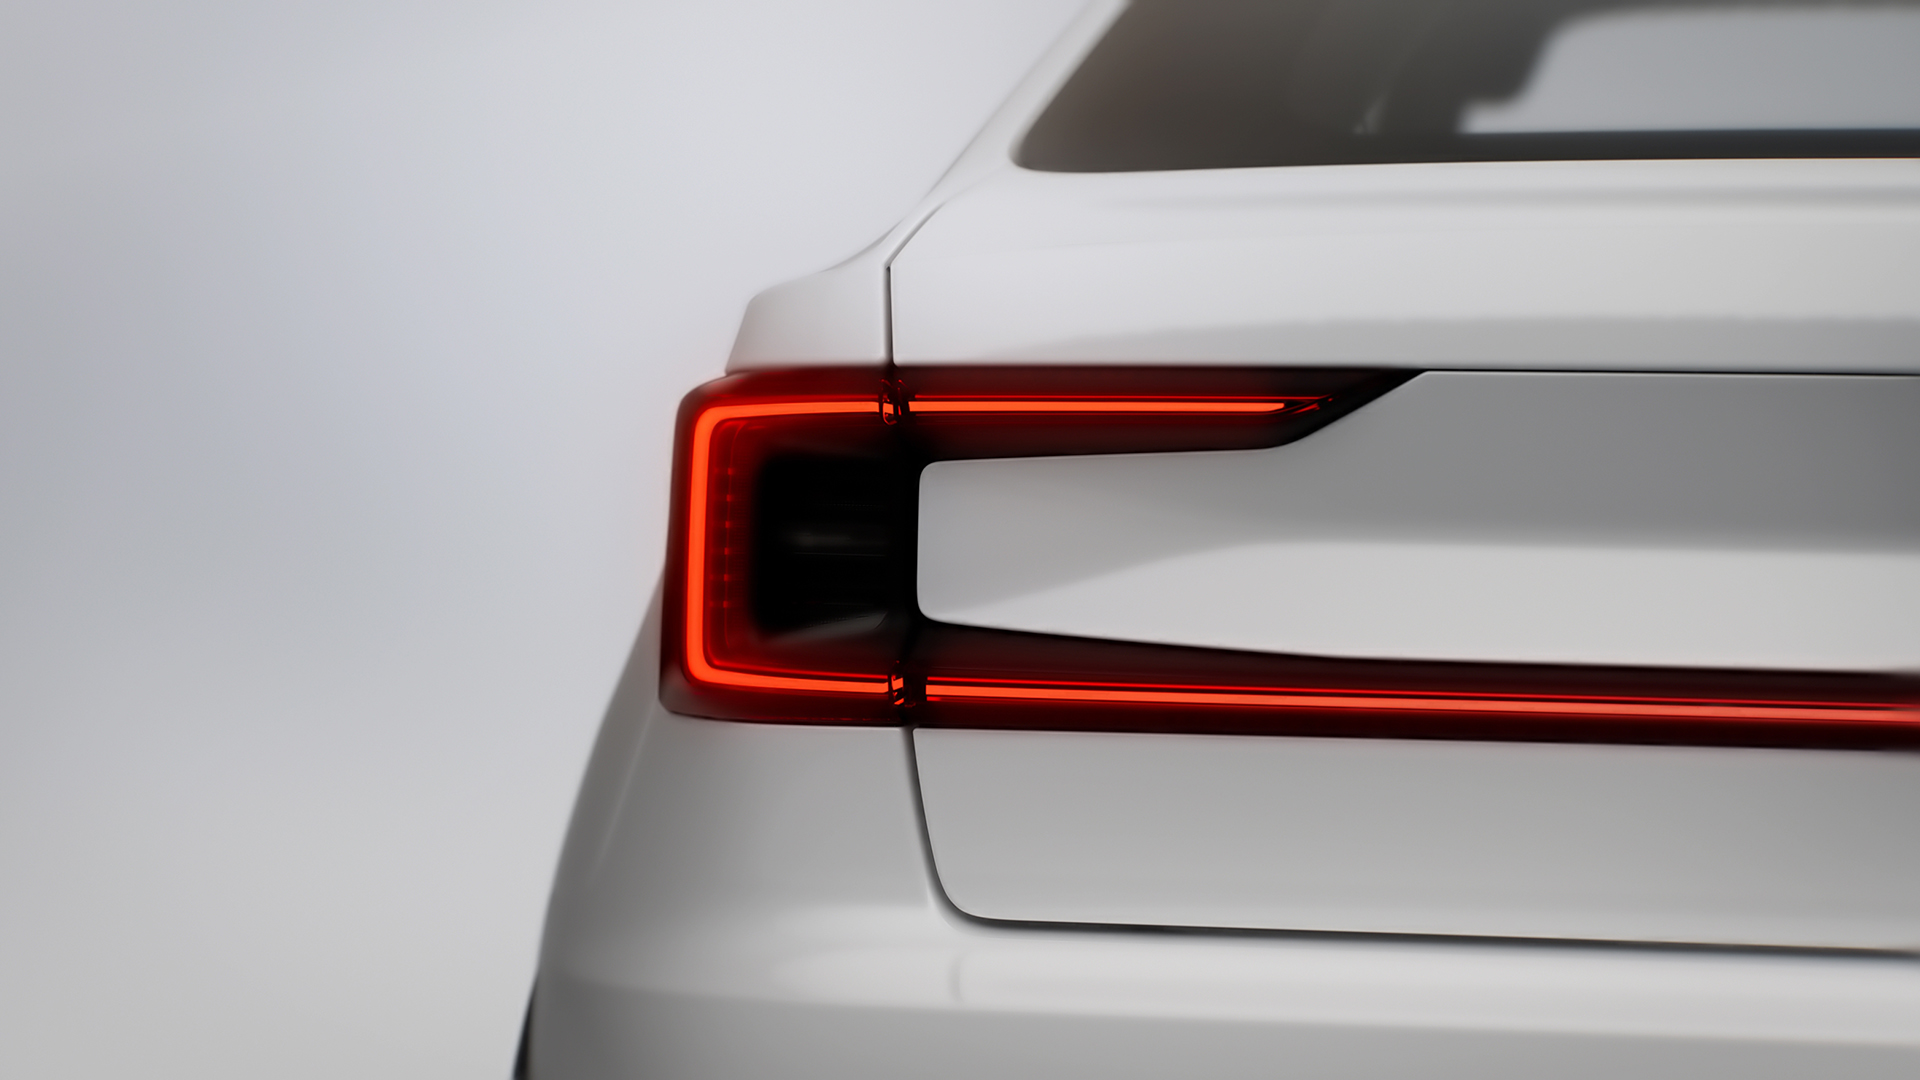 Polestar 2 Iconic features